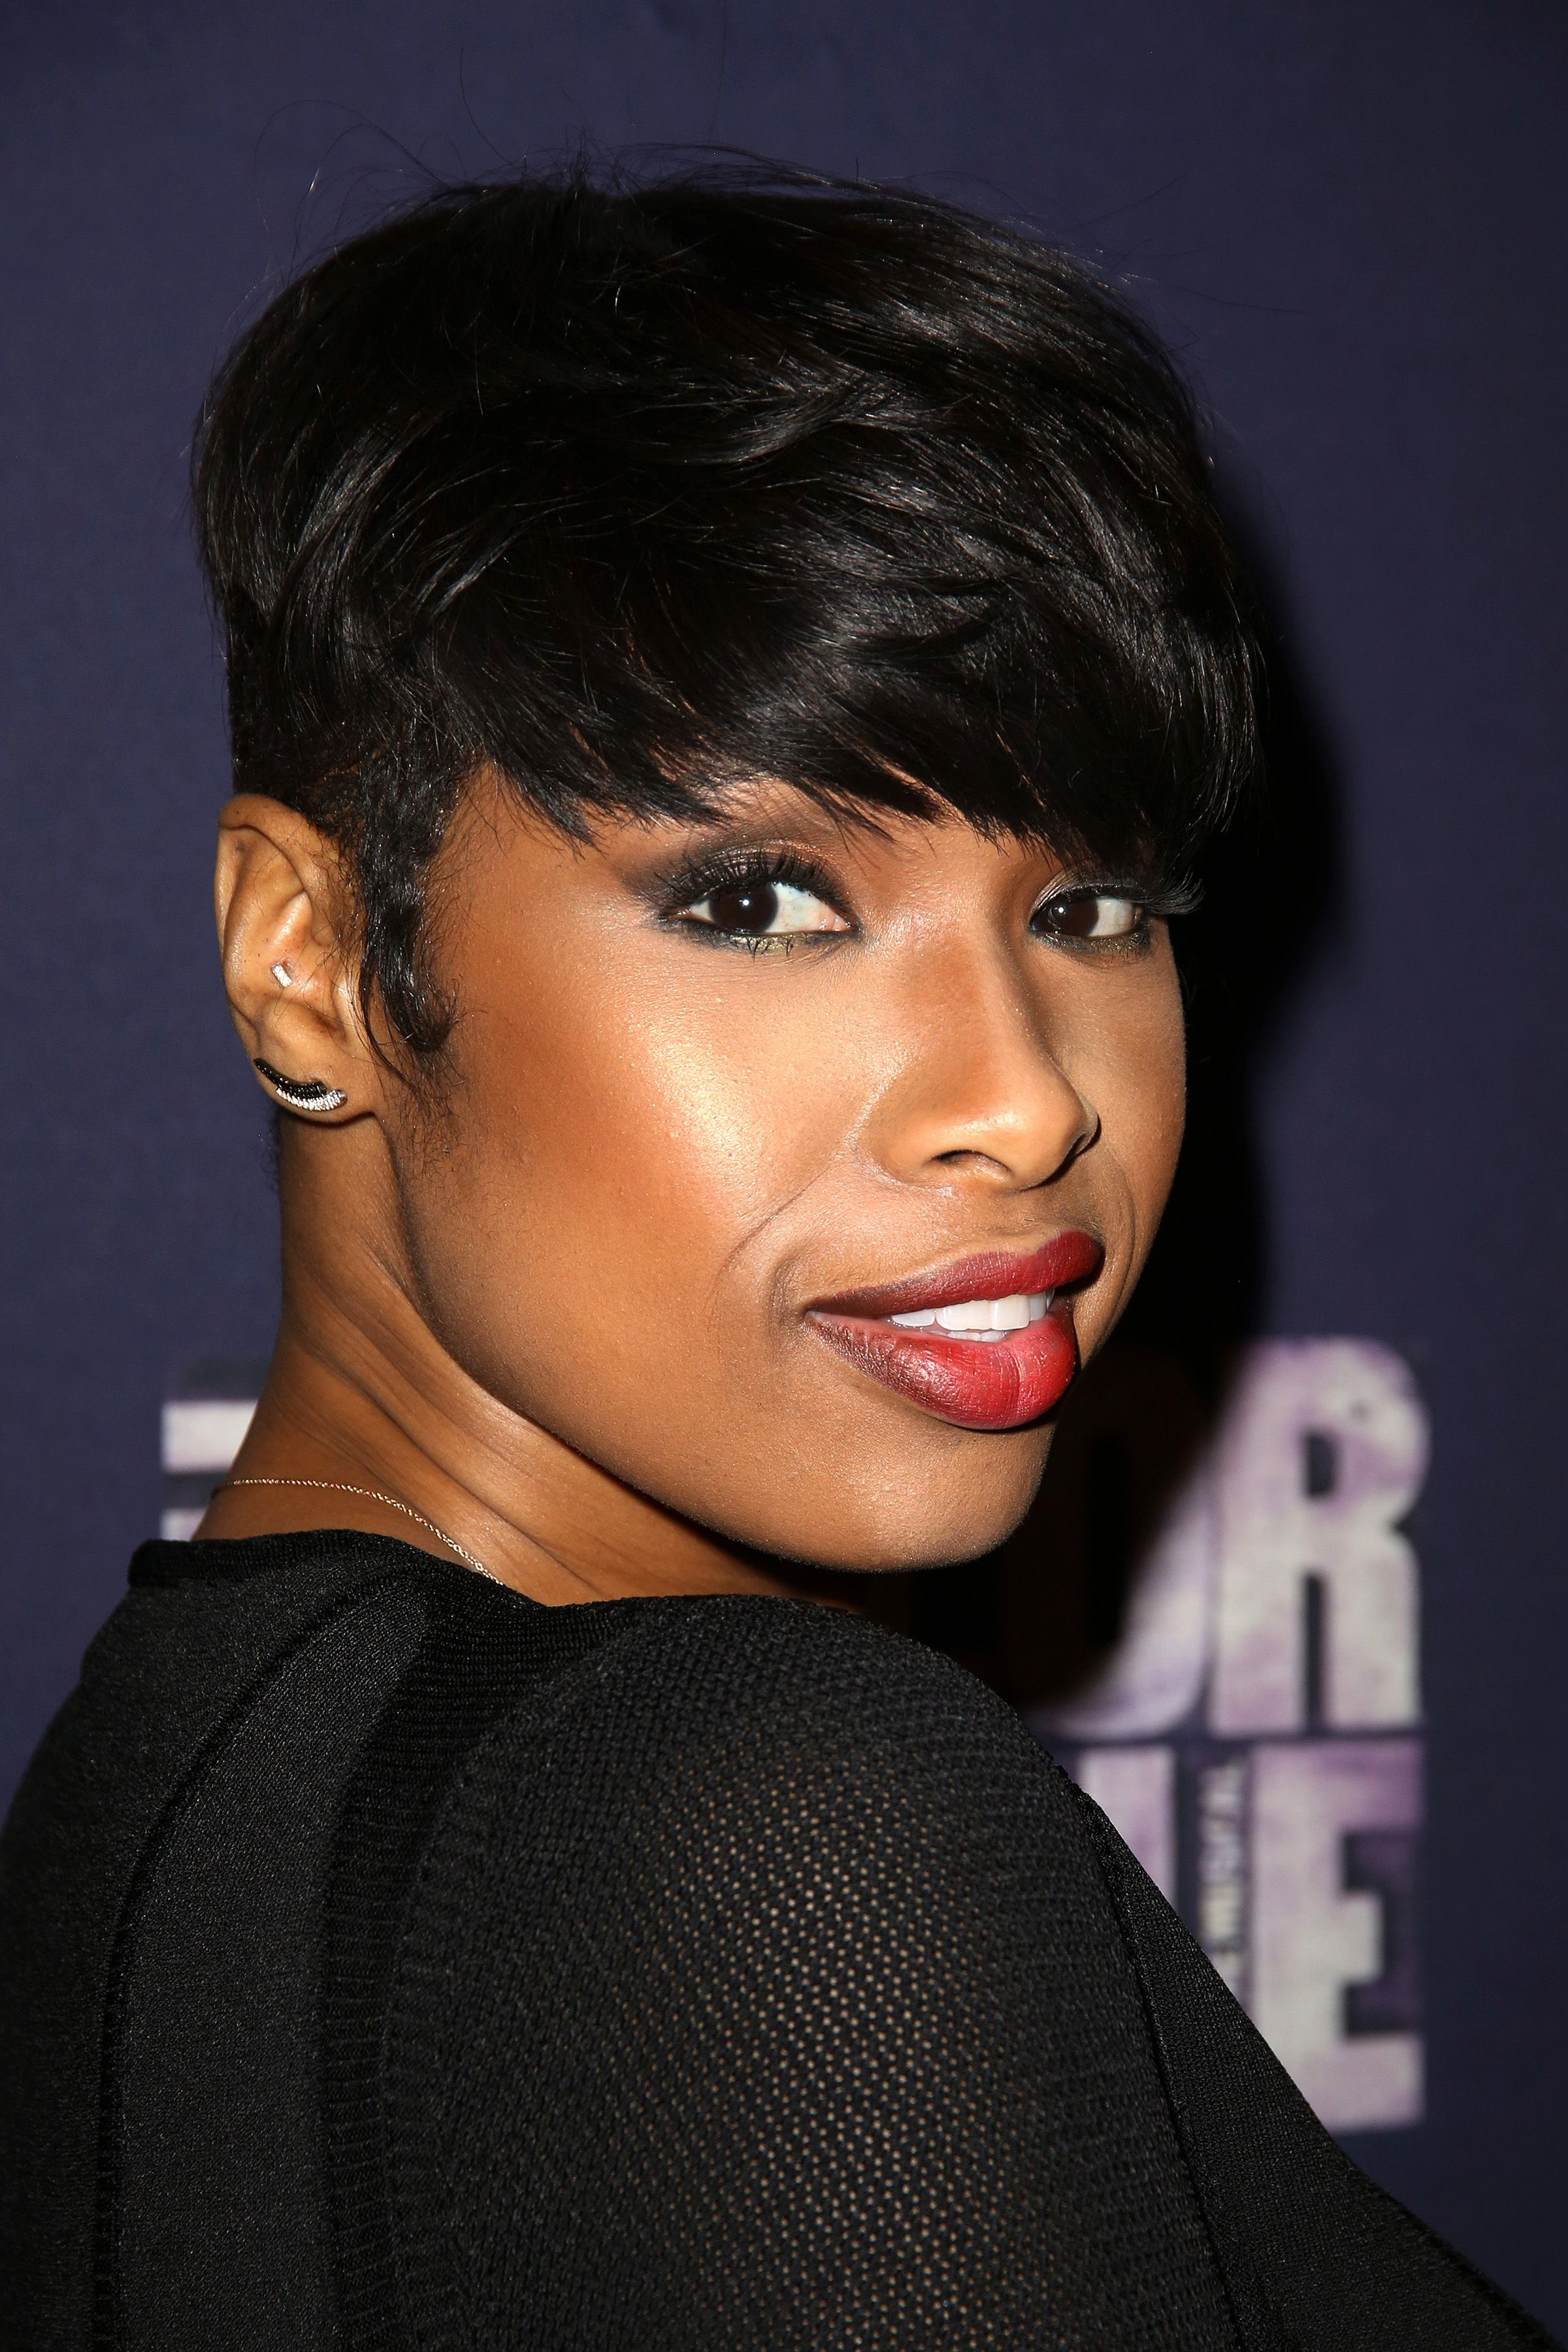 Stylish Black Celebrity Short Haircuts - Hairstyles Ideas